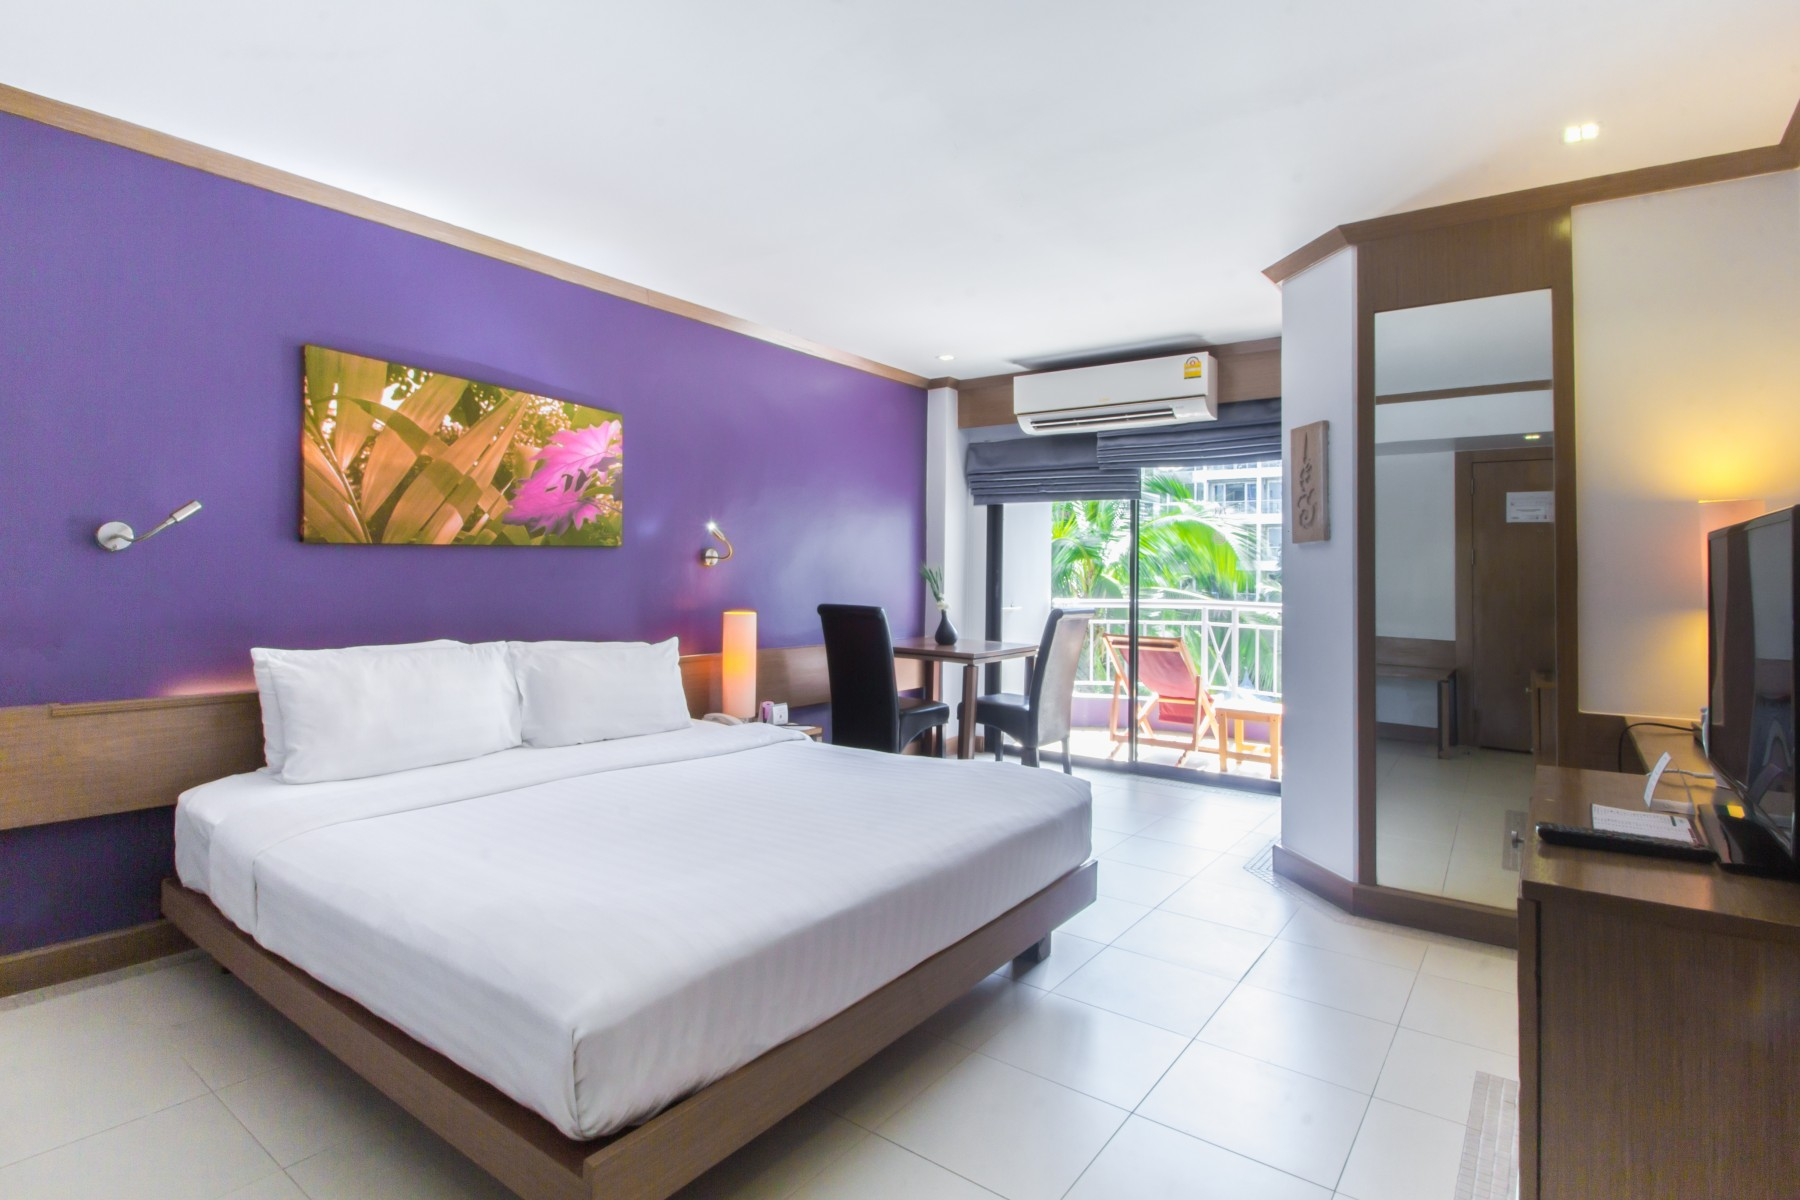 budget hotel room in Pattaya